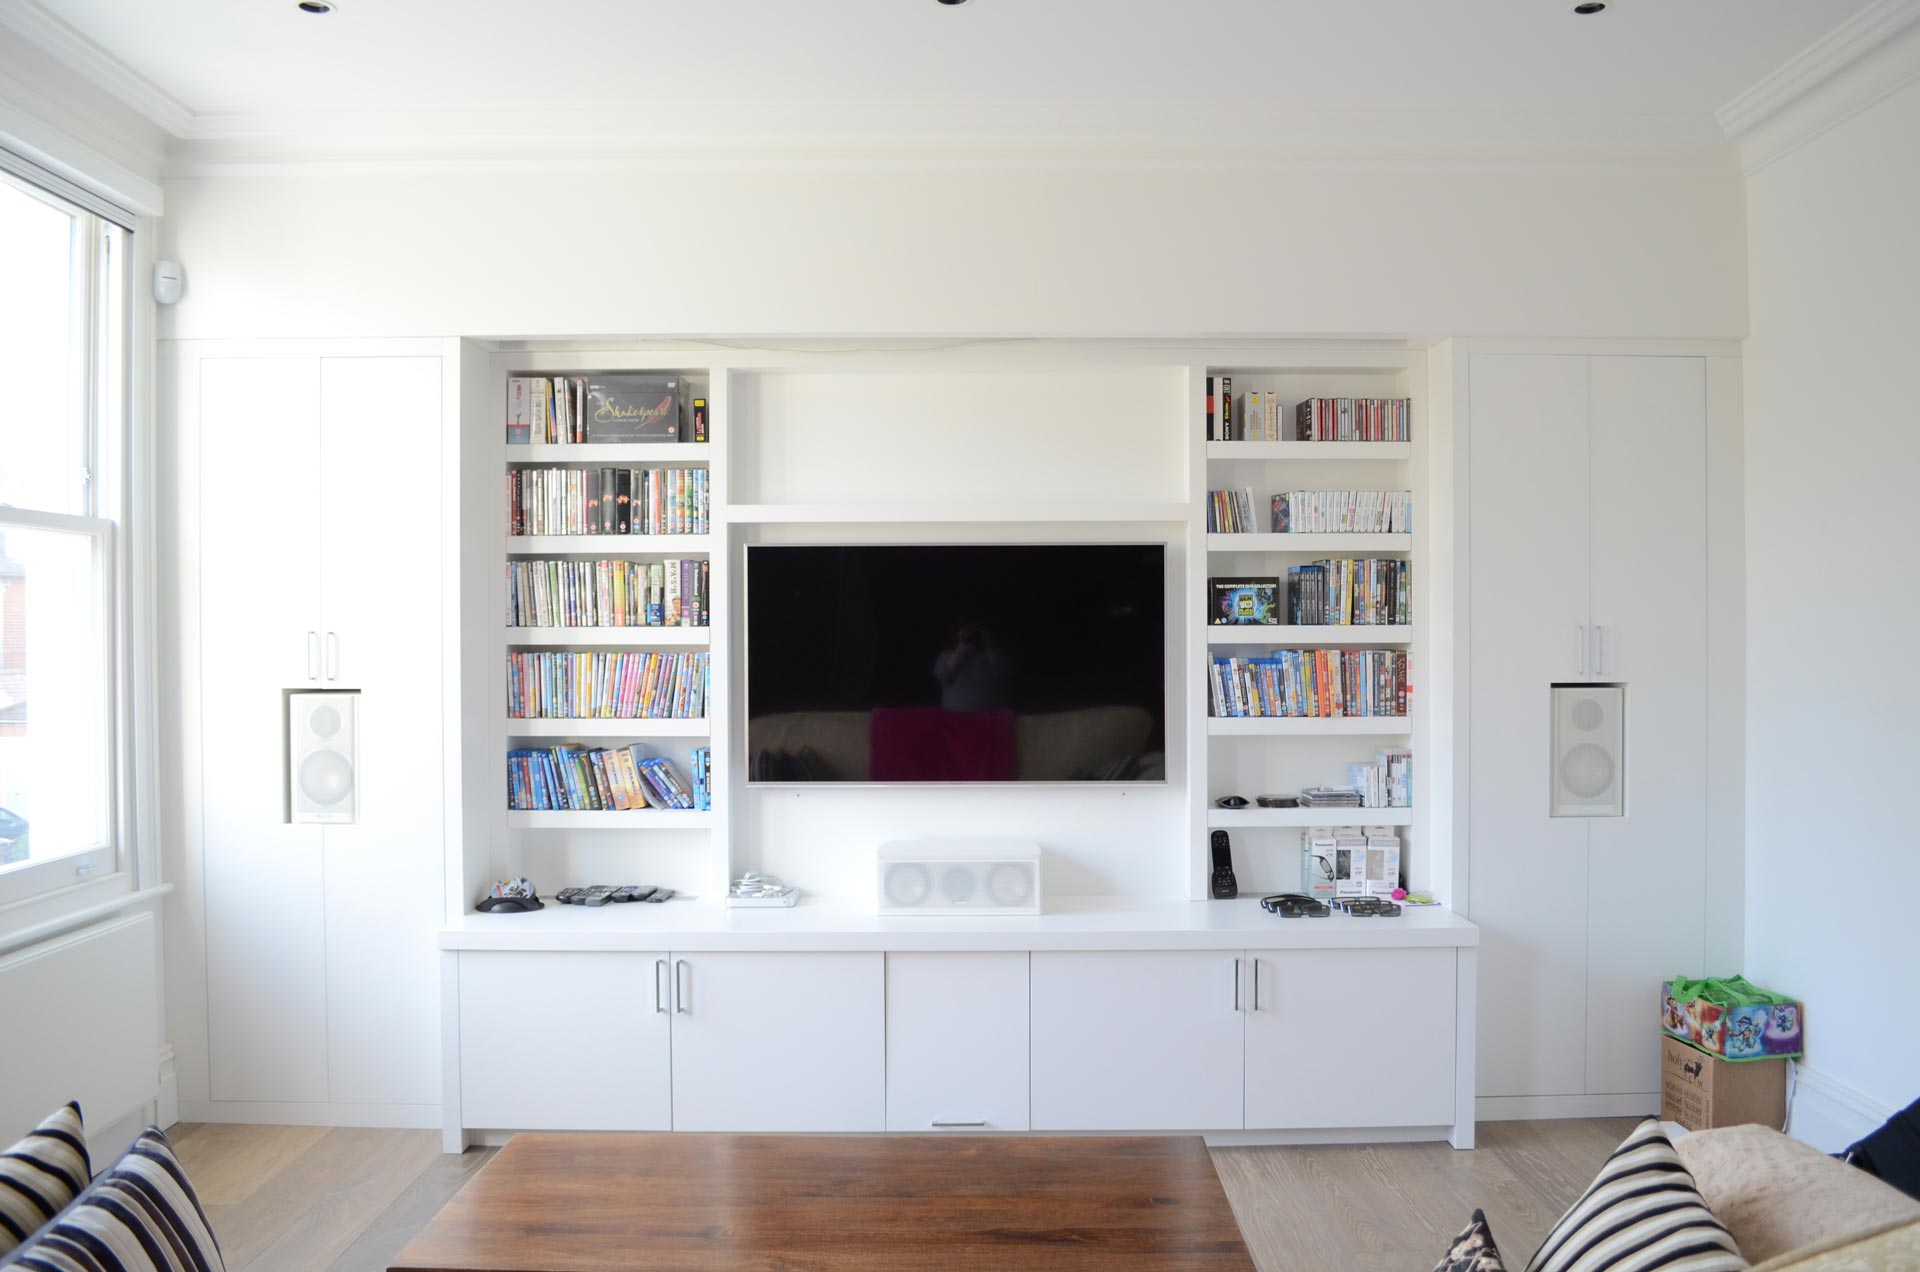 Cinema Room with speakers